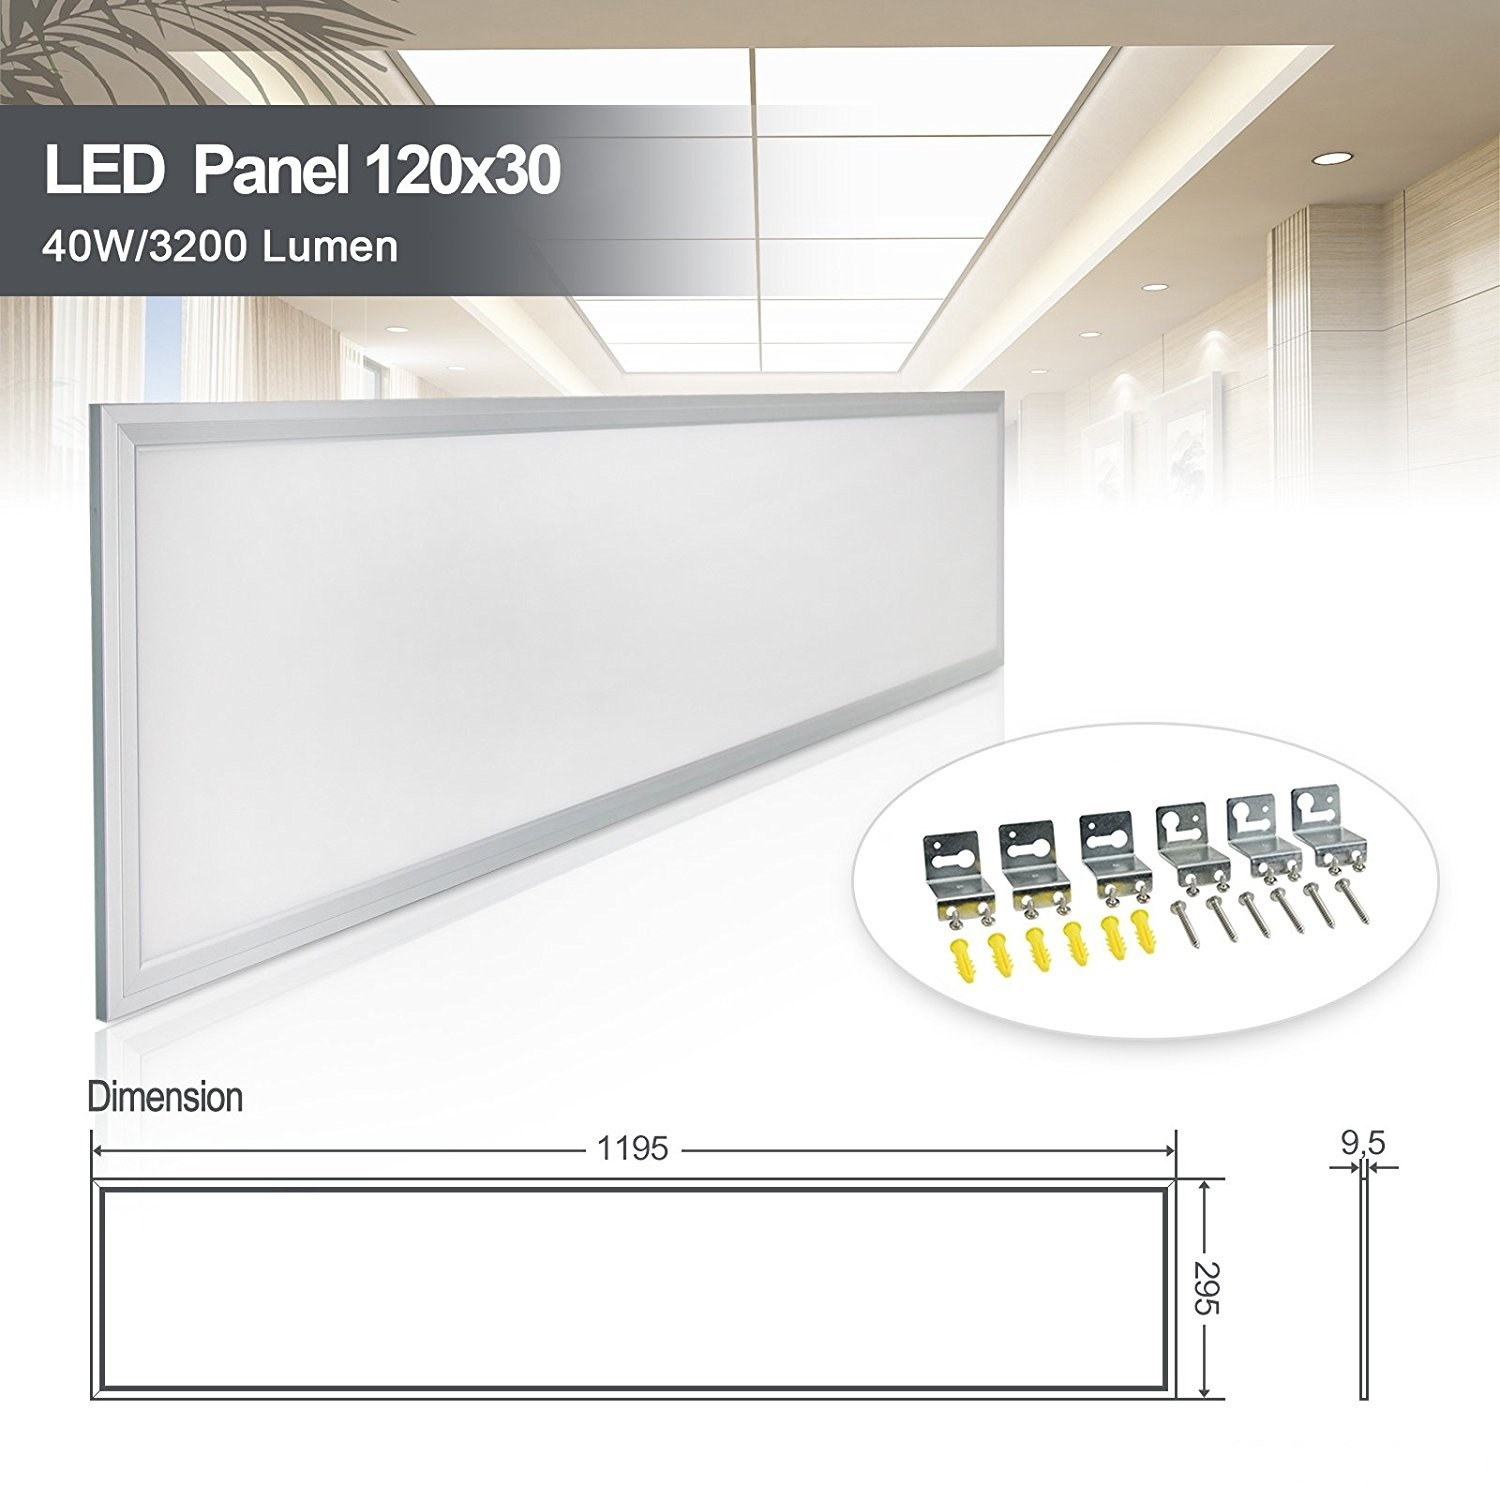 China led panel light suspended ceiling recessed shop office china led panel light suspended ceiling recessed shop office lighting panel 1200 x 600 china shop lighting panel ceiling office light aloadofball Choice Image